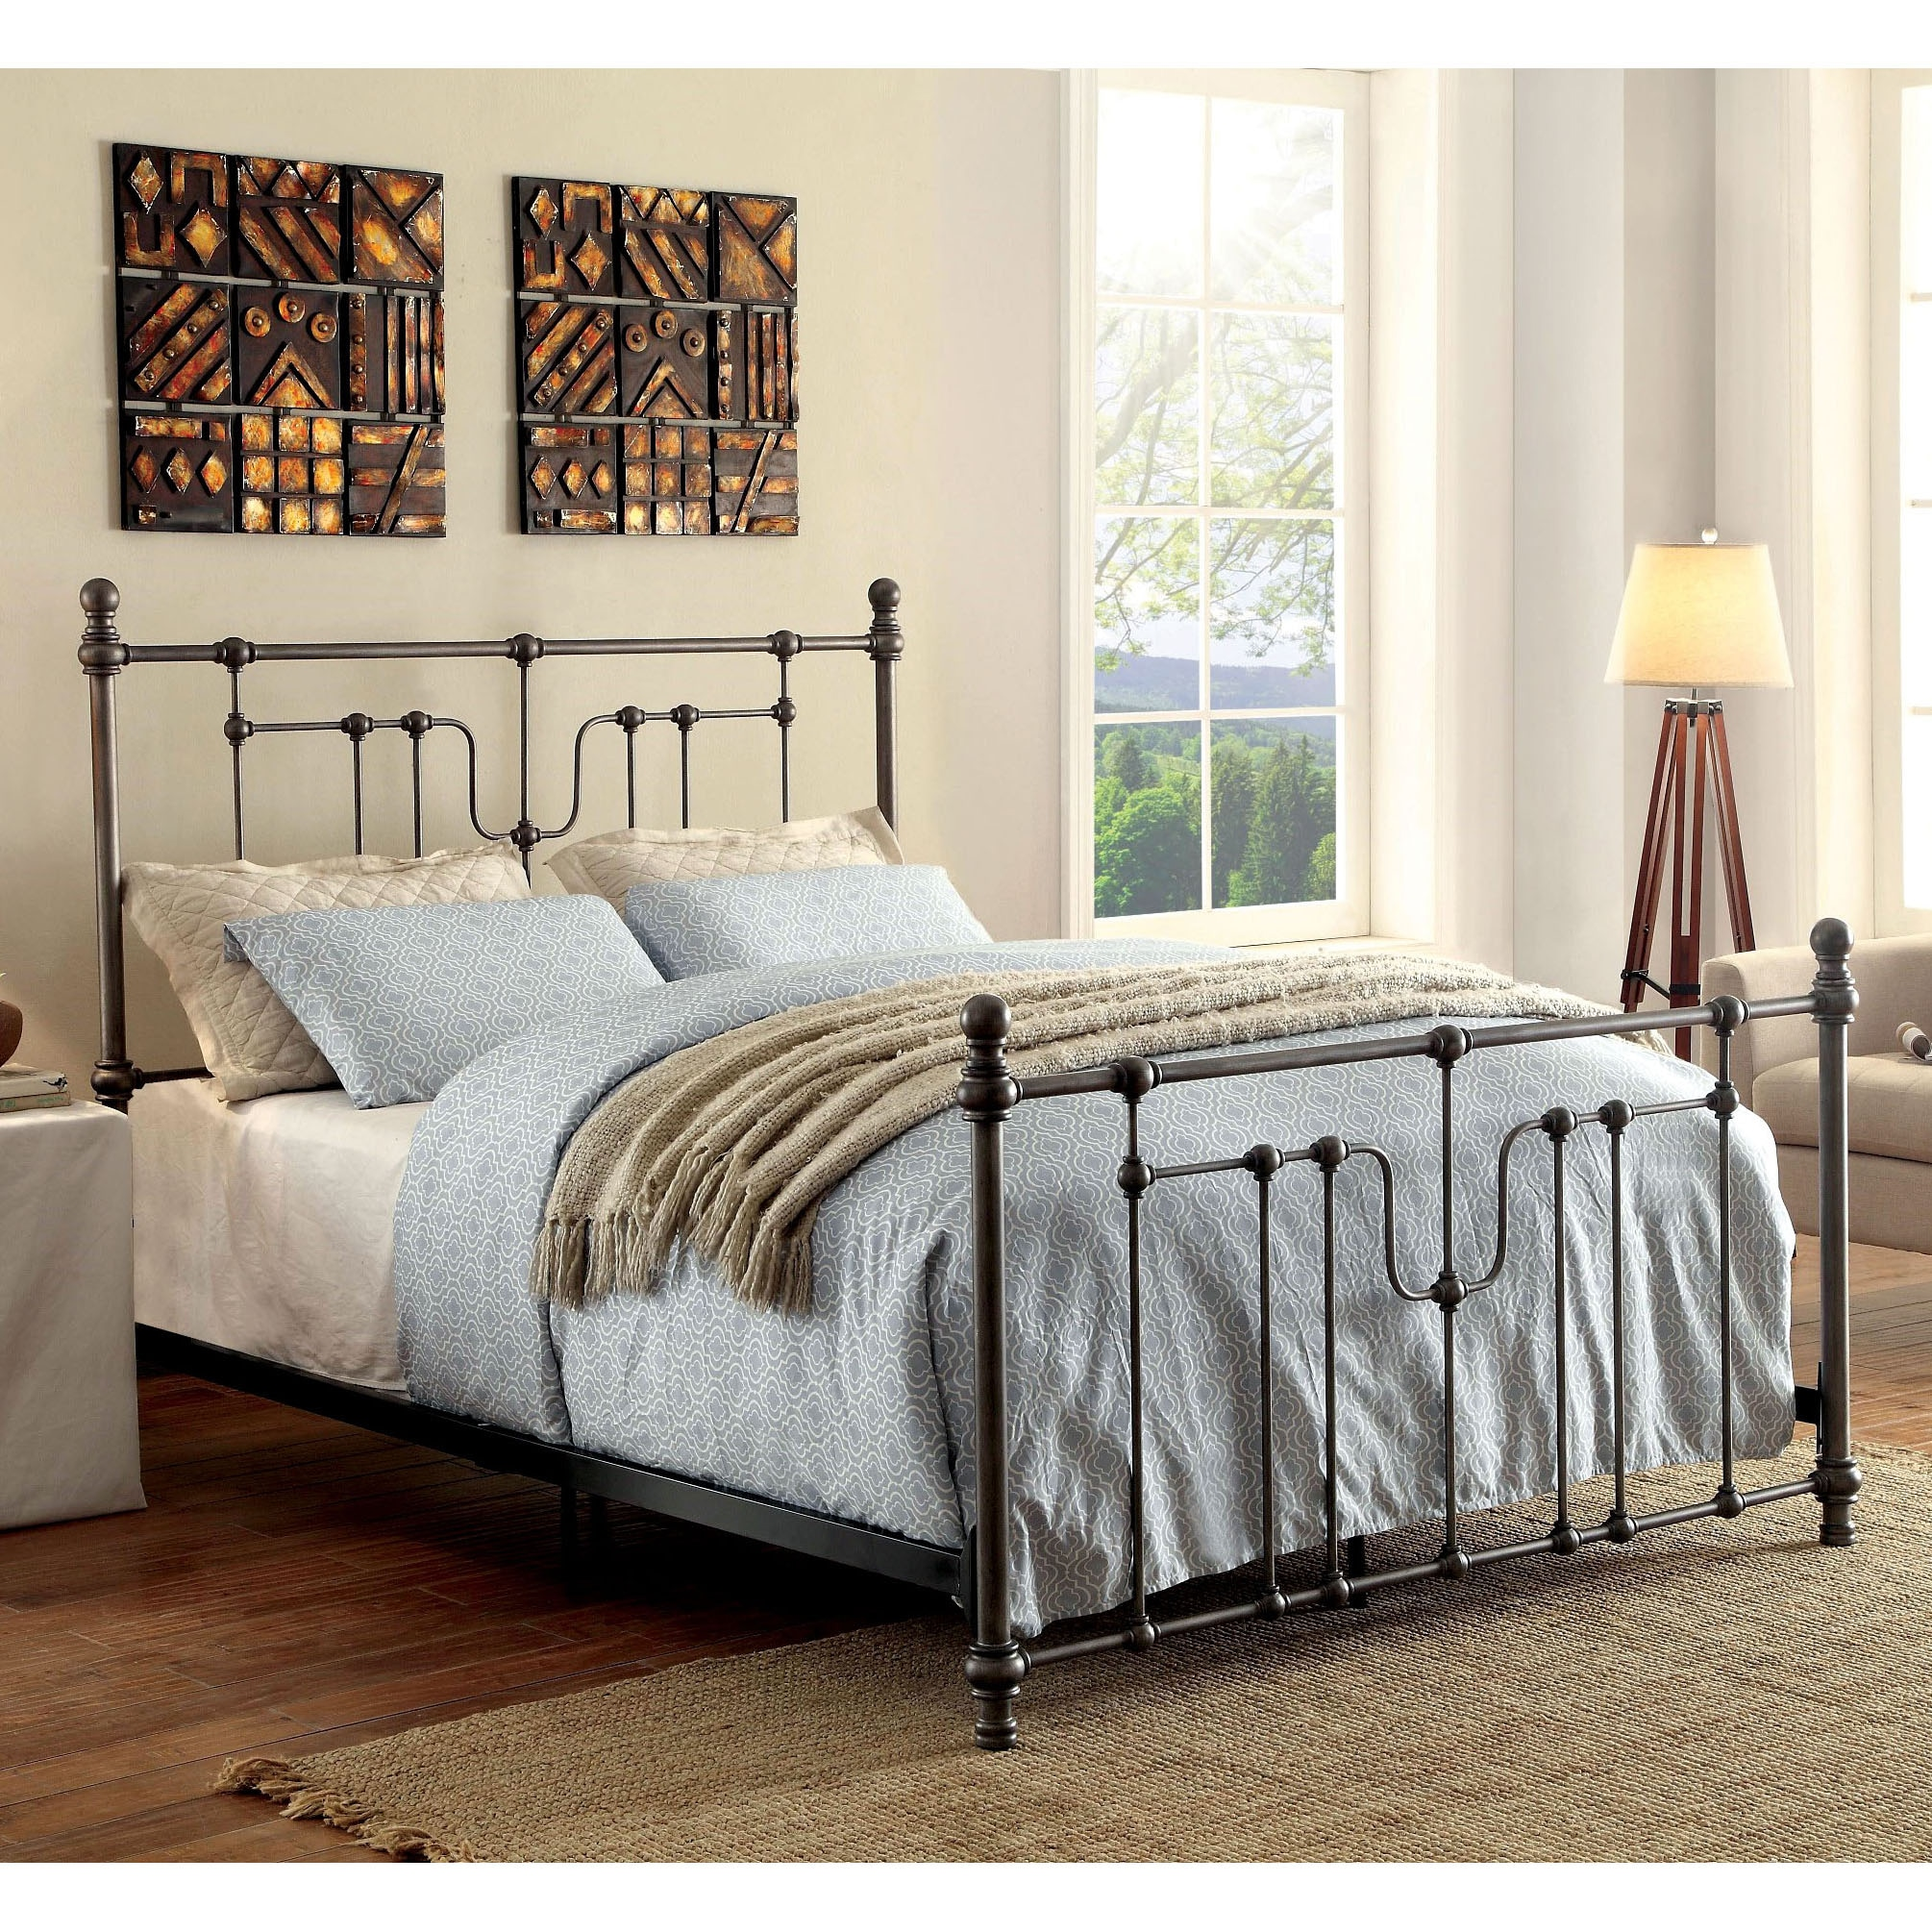 Shop furniture of america trenton vintage style grey metal bed on sale free shipping today overstock com 15175432